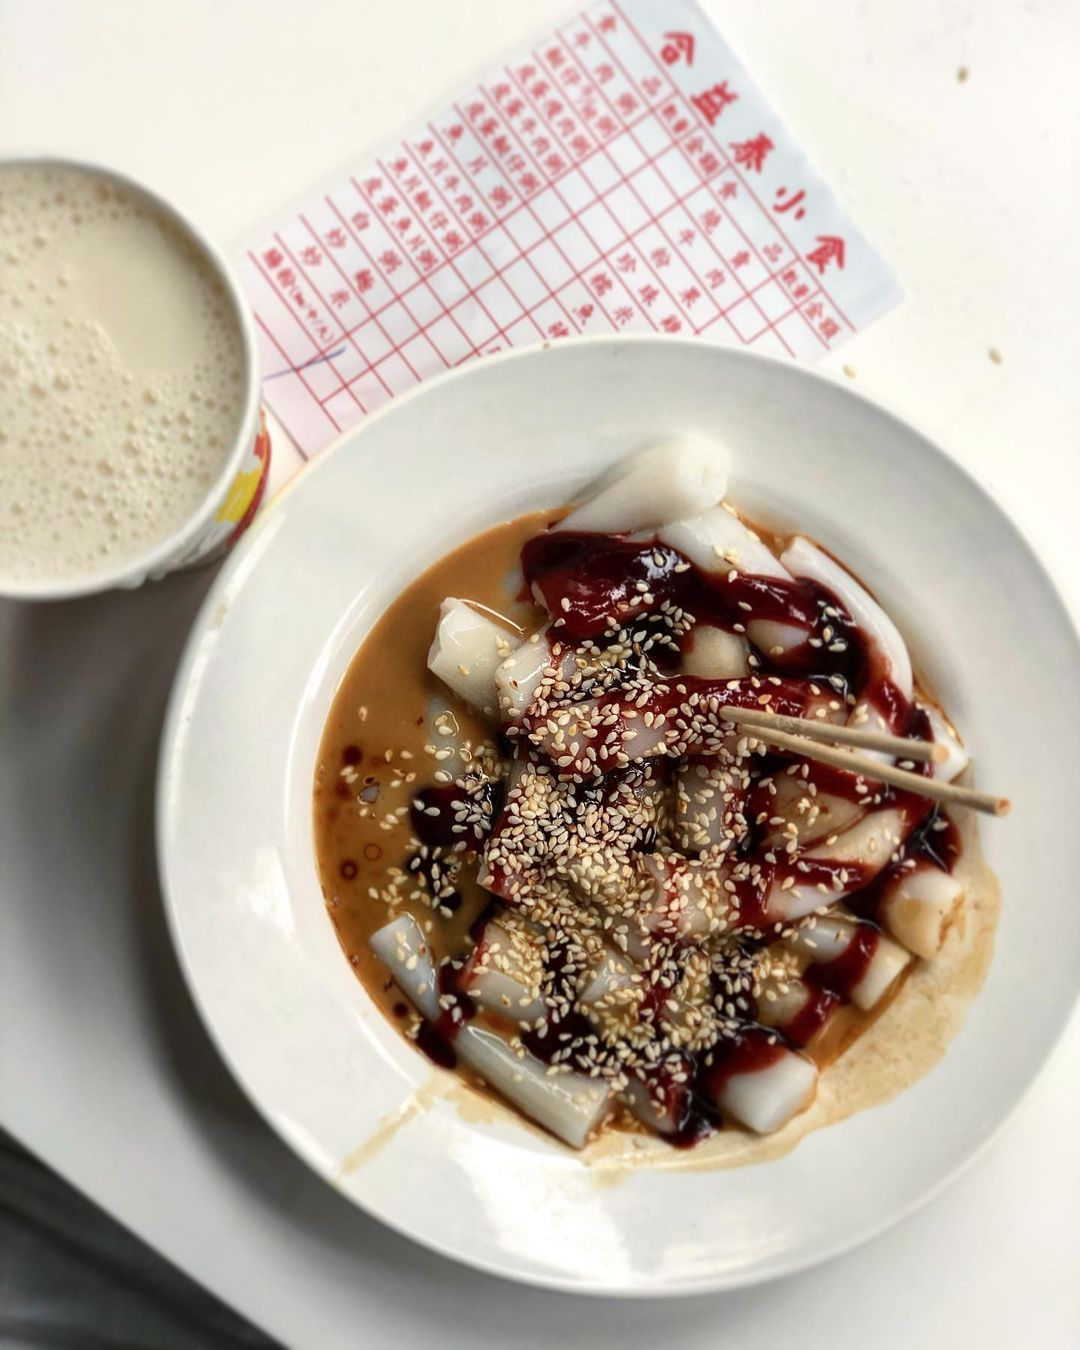 Hong Kong-Style Breakfast: Where To Find The Best Cheung Fun in Hong Kong